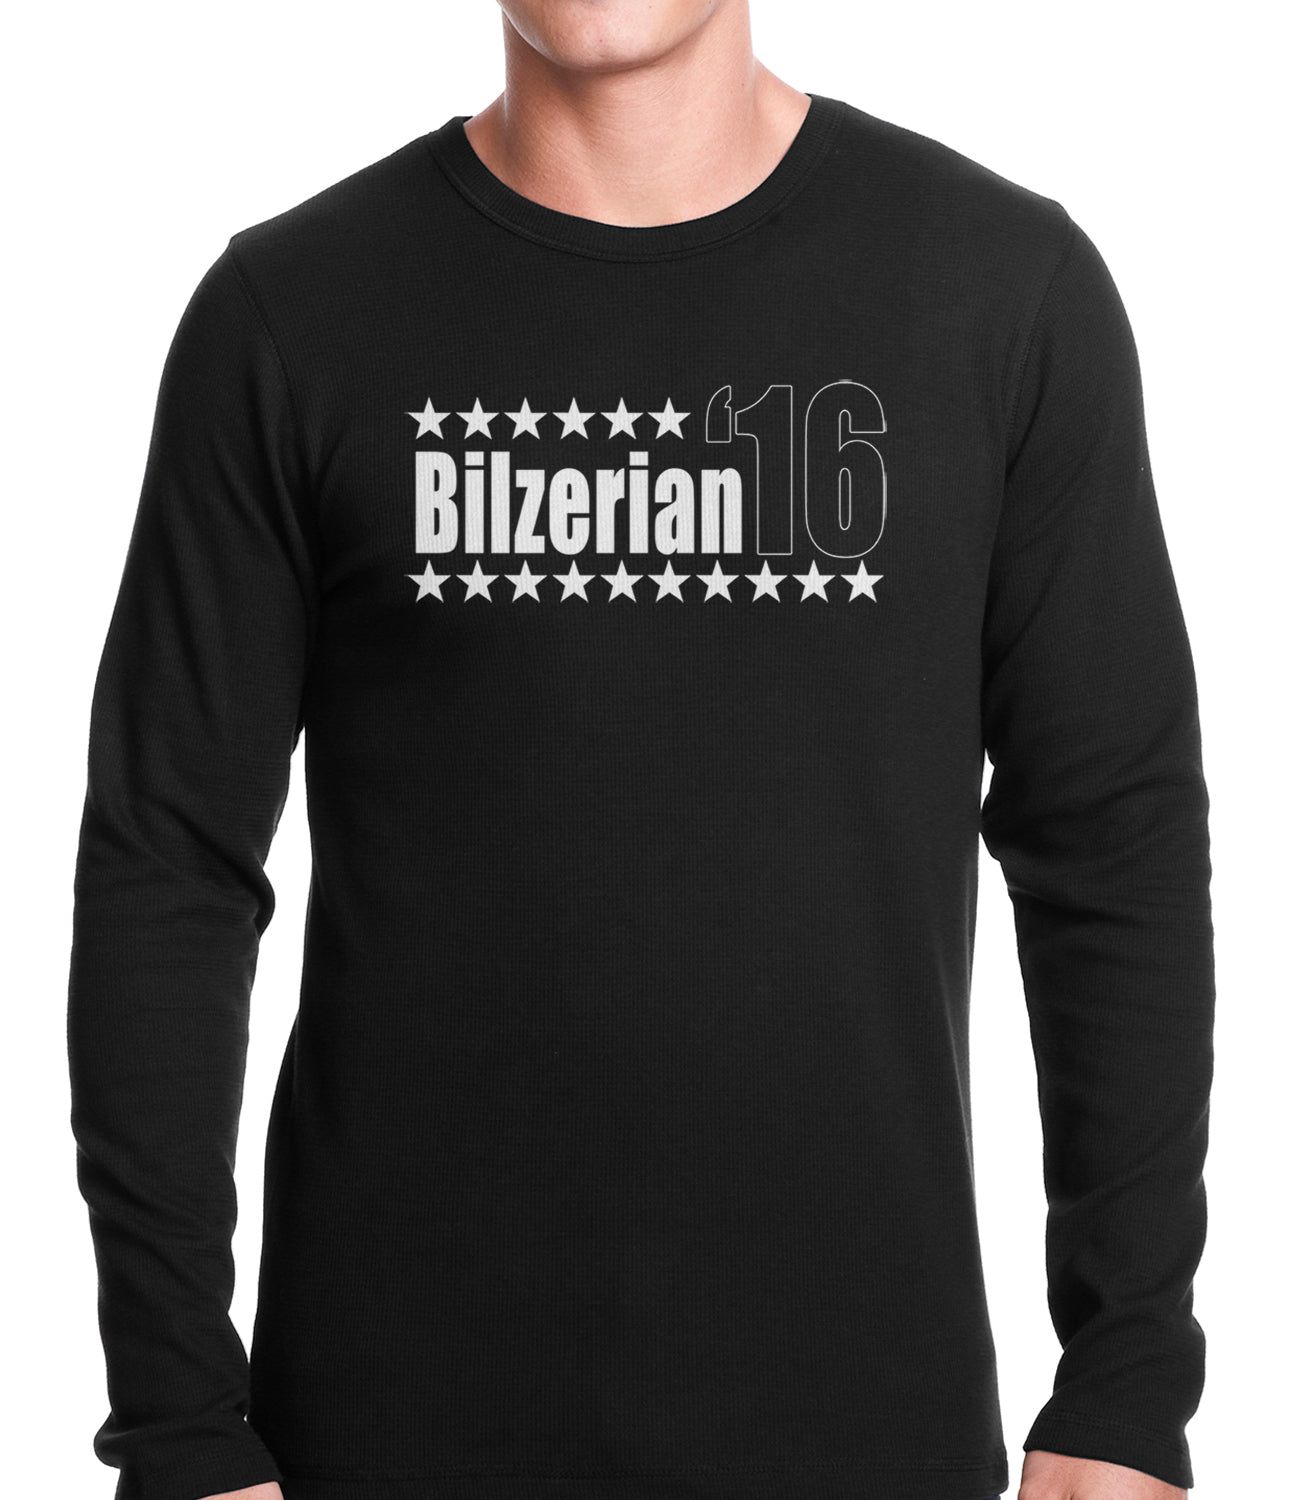 Bilzerian '16 - Vote For Bilzerian For President in 2016 Thermal Shirt